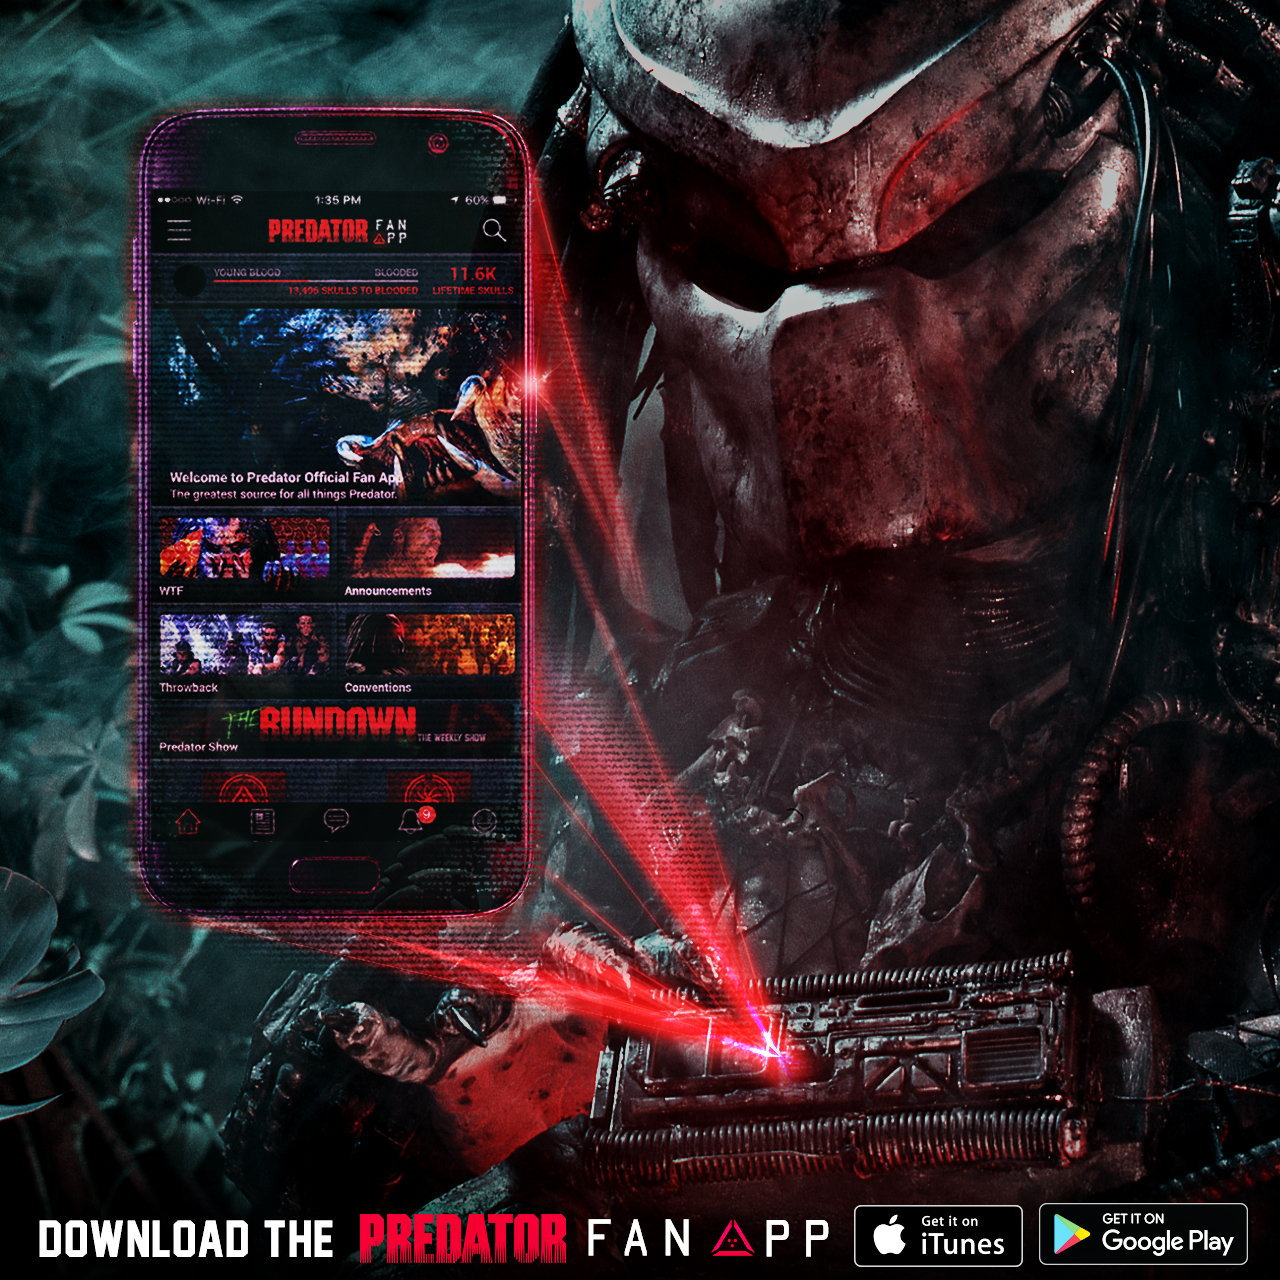 Official Predator Fan App